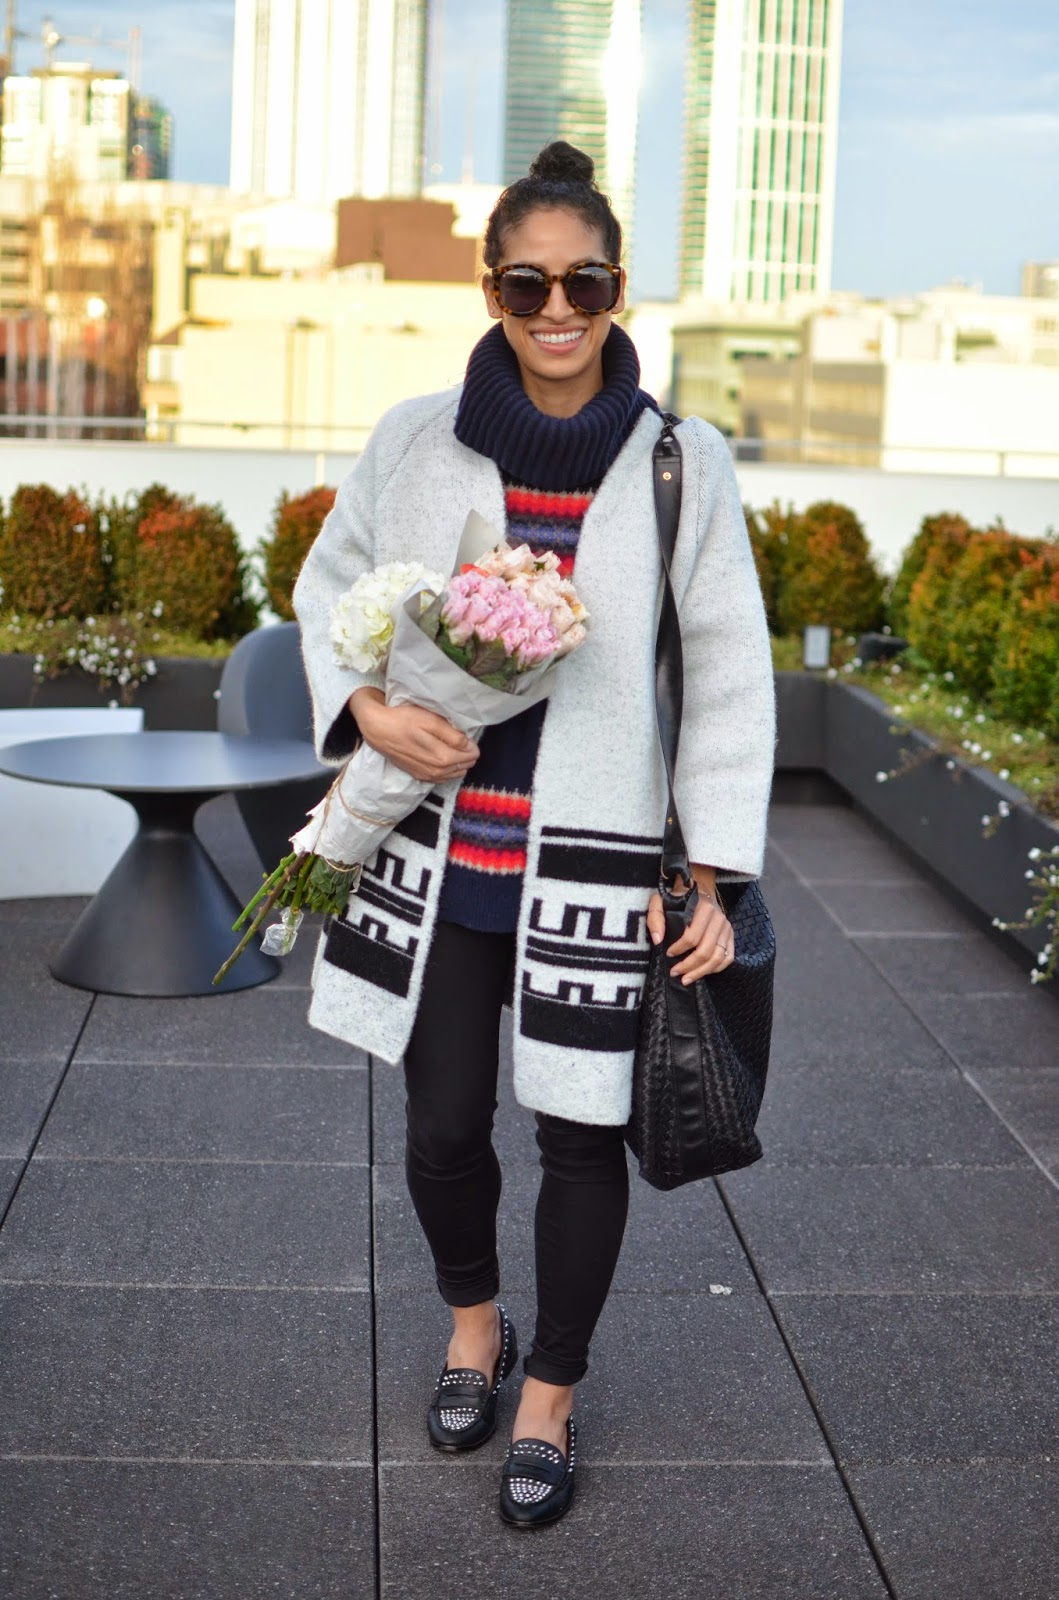 zara, white coat, how to wear contrasting prints, pink roses, bottega vendetta, leather handbag, Karen Walker Super